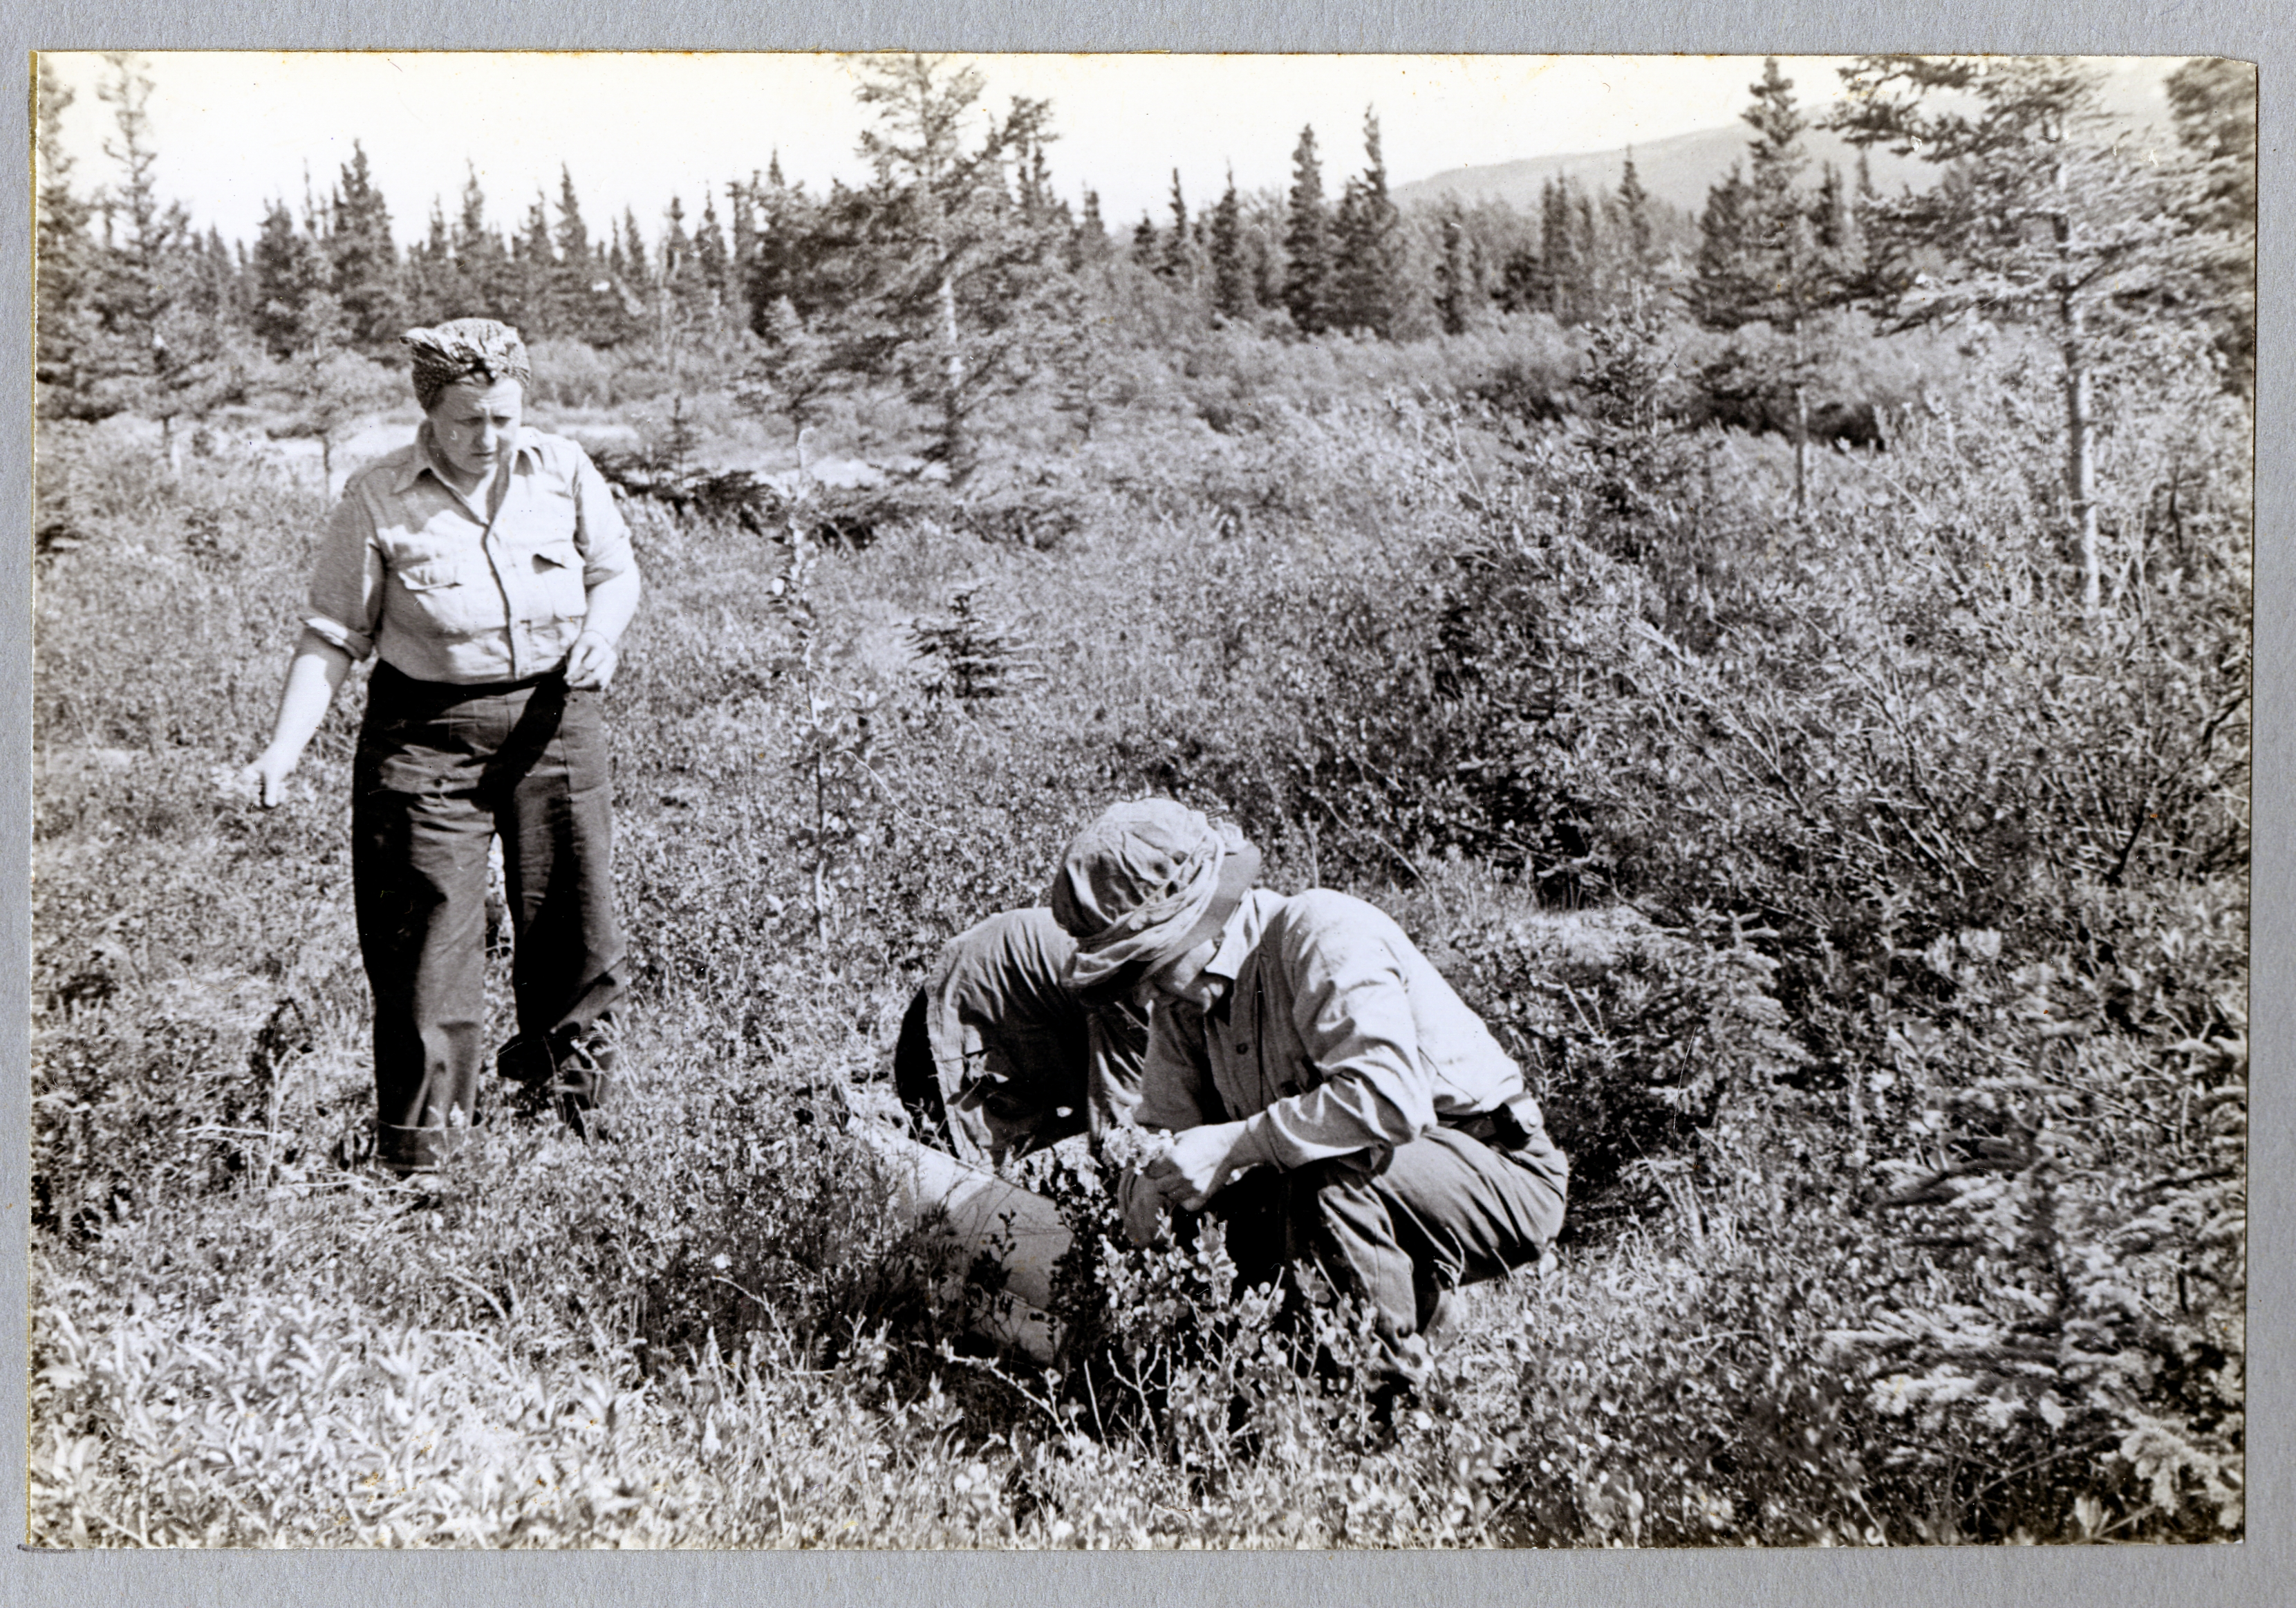 L-25-5. Collecting Primulas on muskeg between beaches west of Mile 1020-21. Near Pine Creek Camp. Alaska Highway. 6/23/44.